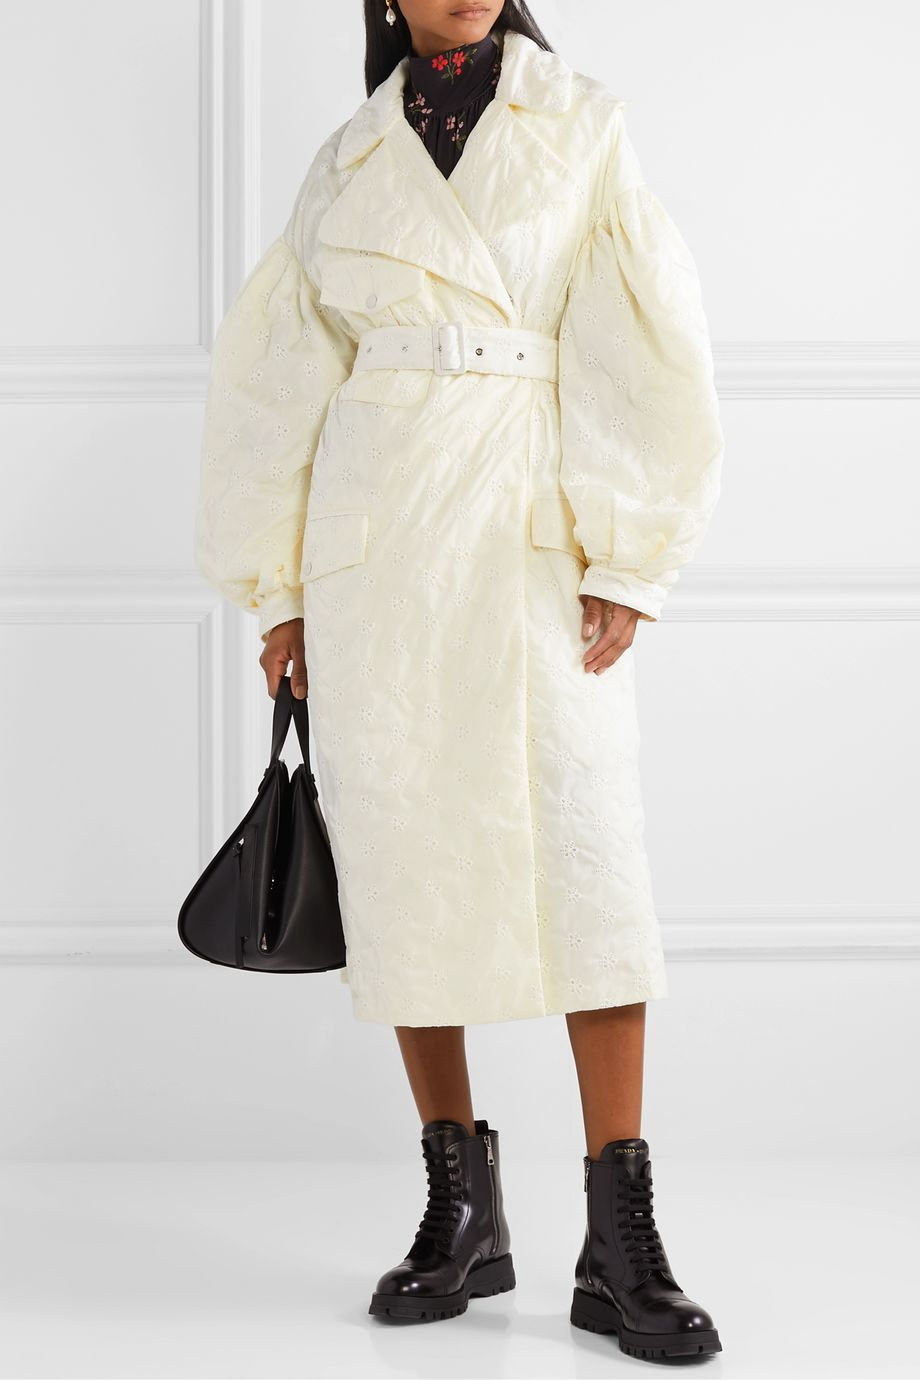 Moncler Genius + 4 Simone Rocha Dinah belted broderie anglaise shell coat